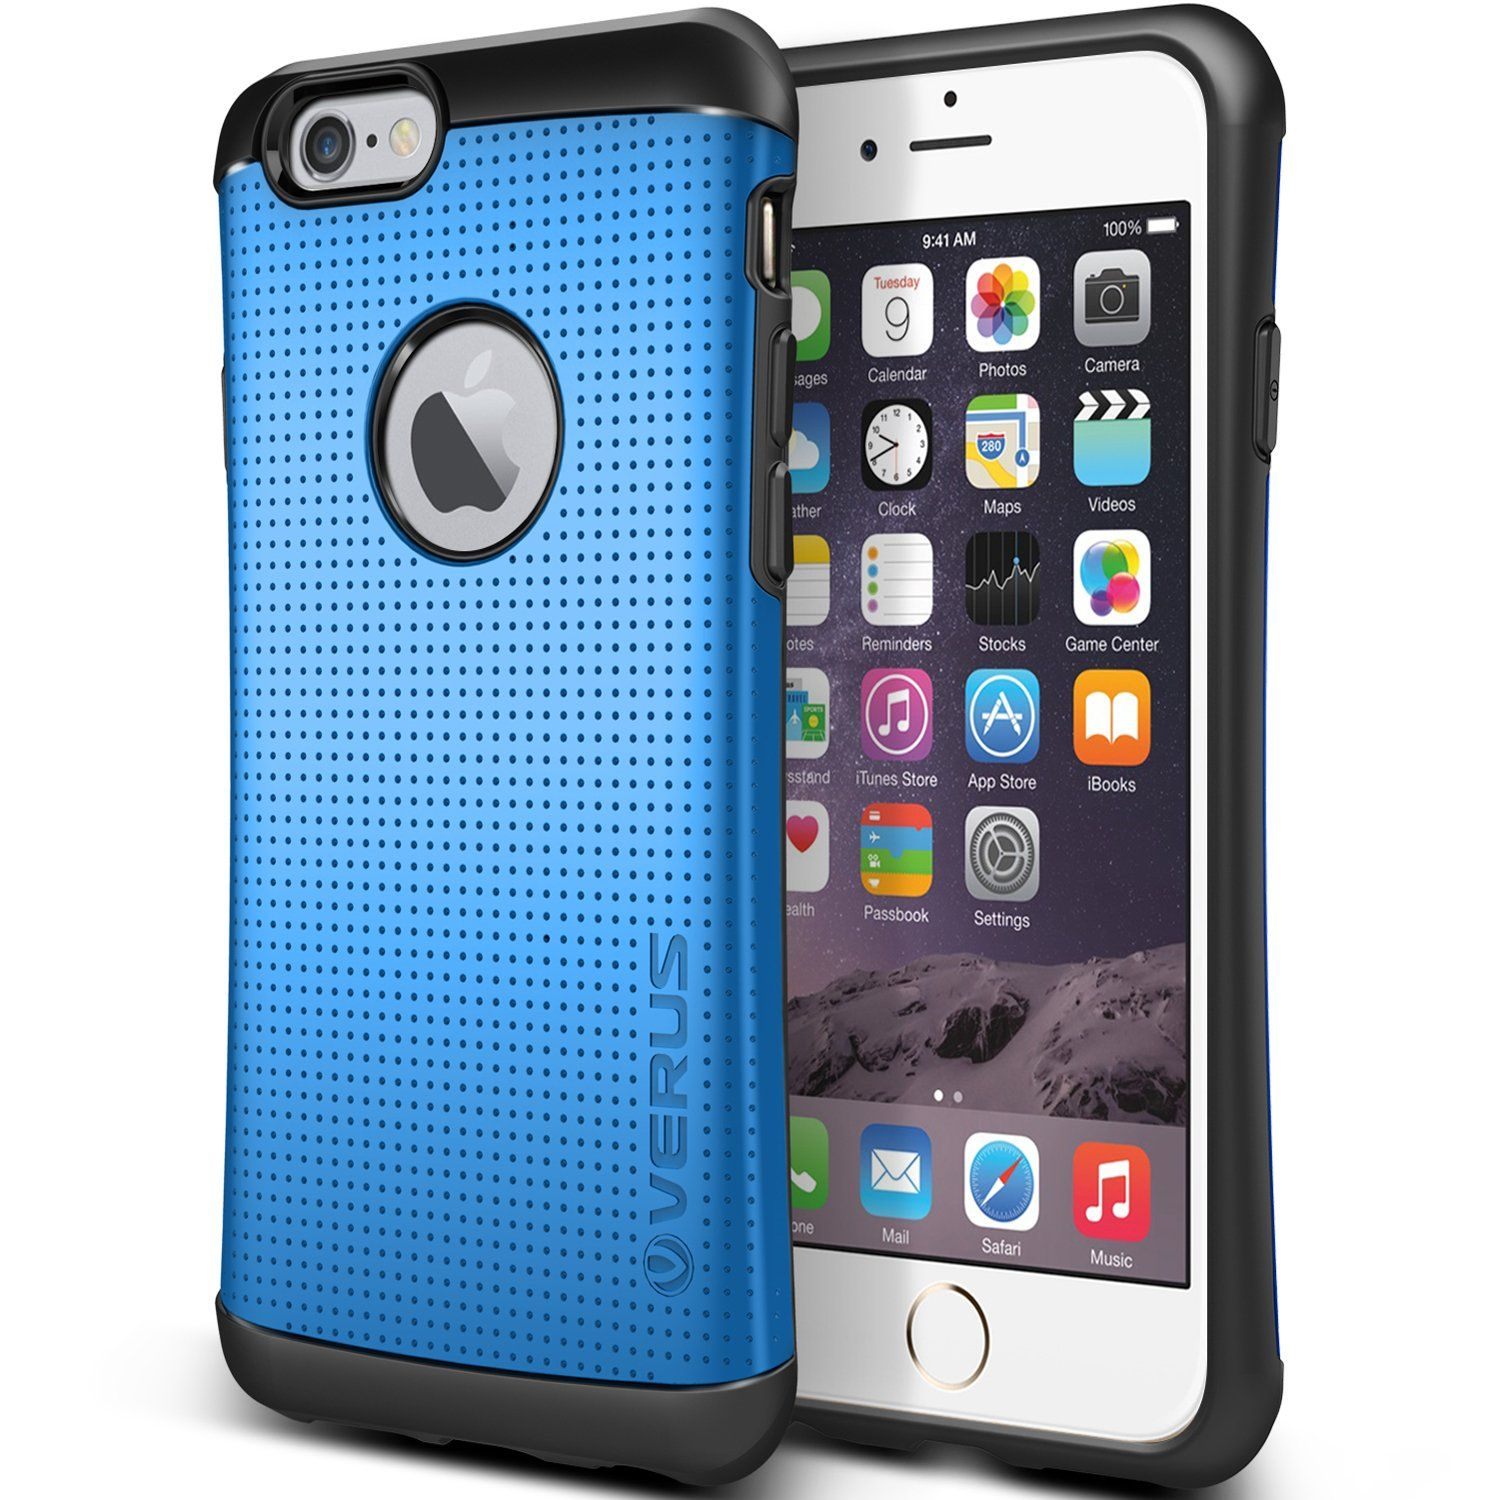 """Amazon.com: iPhone 6 Plus Case, Verus [Heavy Drop Protection] iPhone 6 Plus 5.5"""" Case [Thor][Satin Silver] Extra Slim Fit Dual Layer Hard Case - Verizon, AT&T, Sprint, T-Mobile, International, and Unlocked - Case for Apple iPhone 6 Plus 5.5 Inch Late 2014 Model: USA Designed by Verus Design Lab in California: Cell Phones & Accessories"""